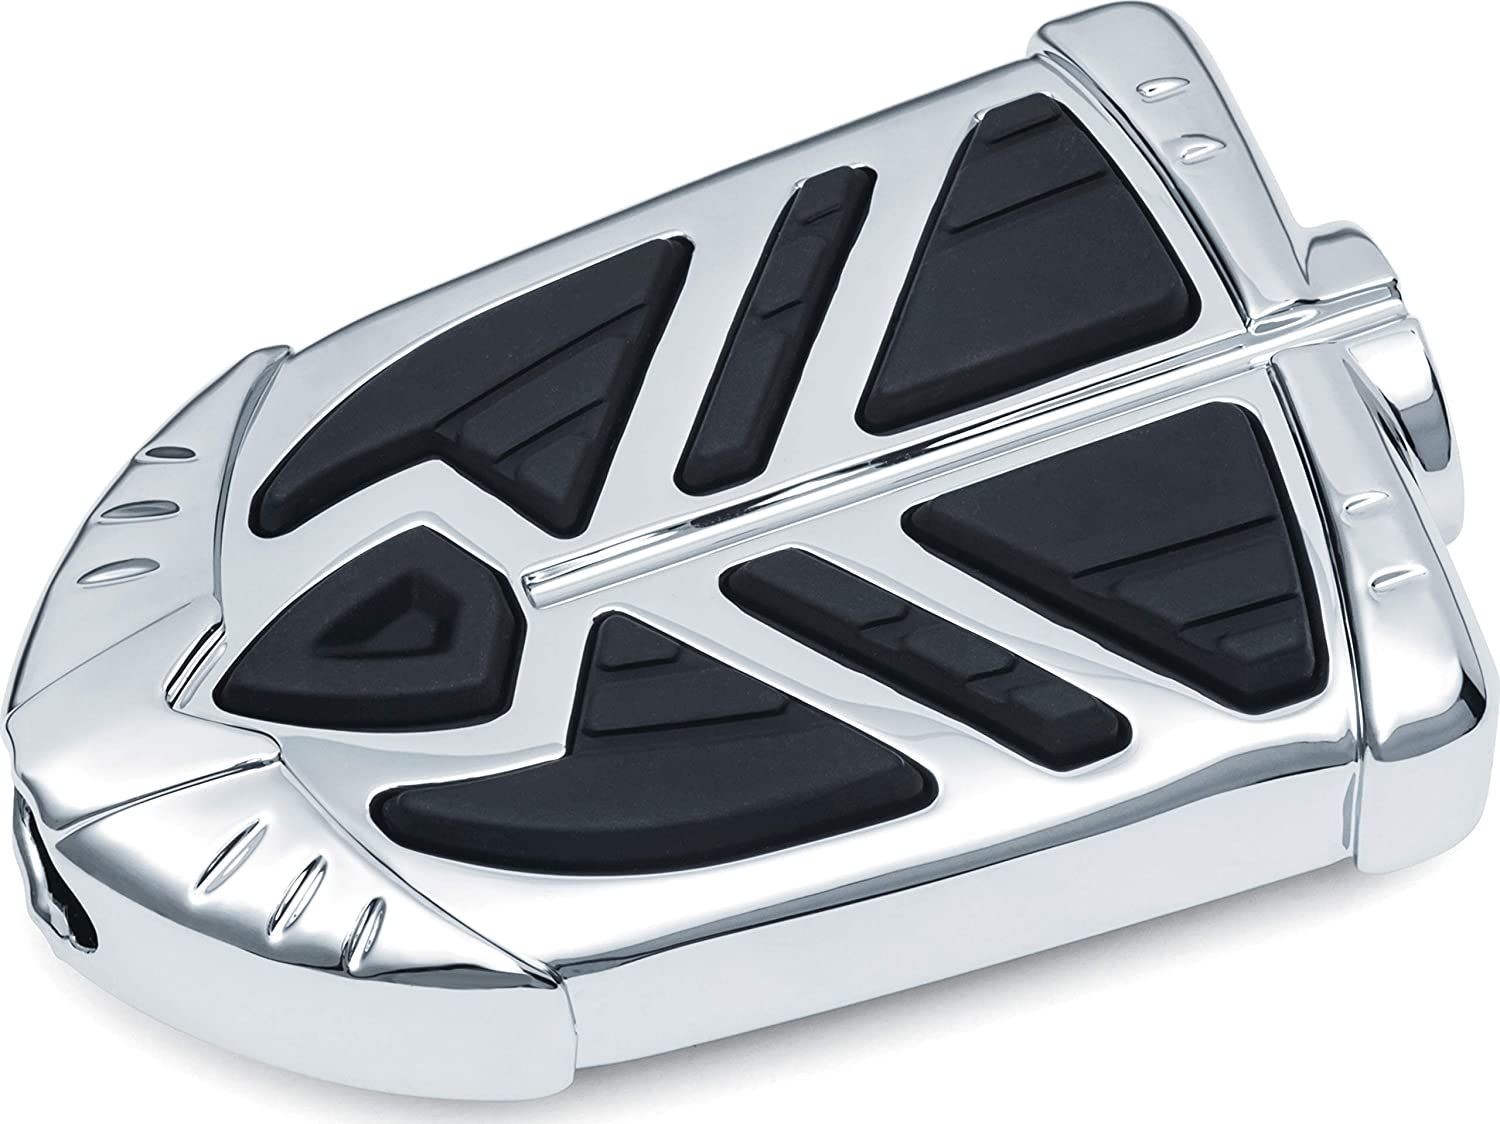 Oil Cooler Cover for 2014-19 Indian Motorcycles Chrome Kuryakyn 5640 Motorcycle Engine Accent Accessory